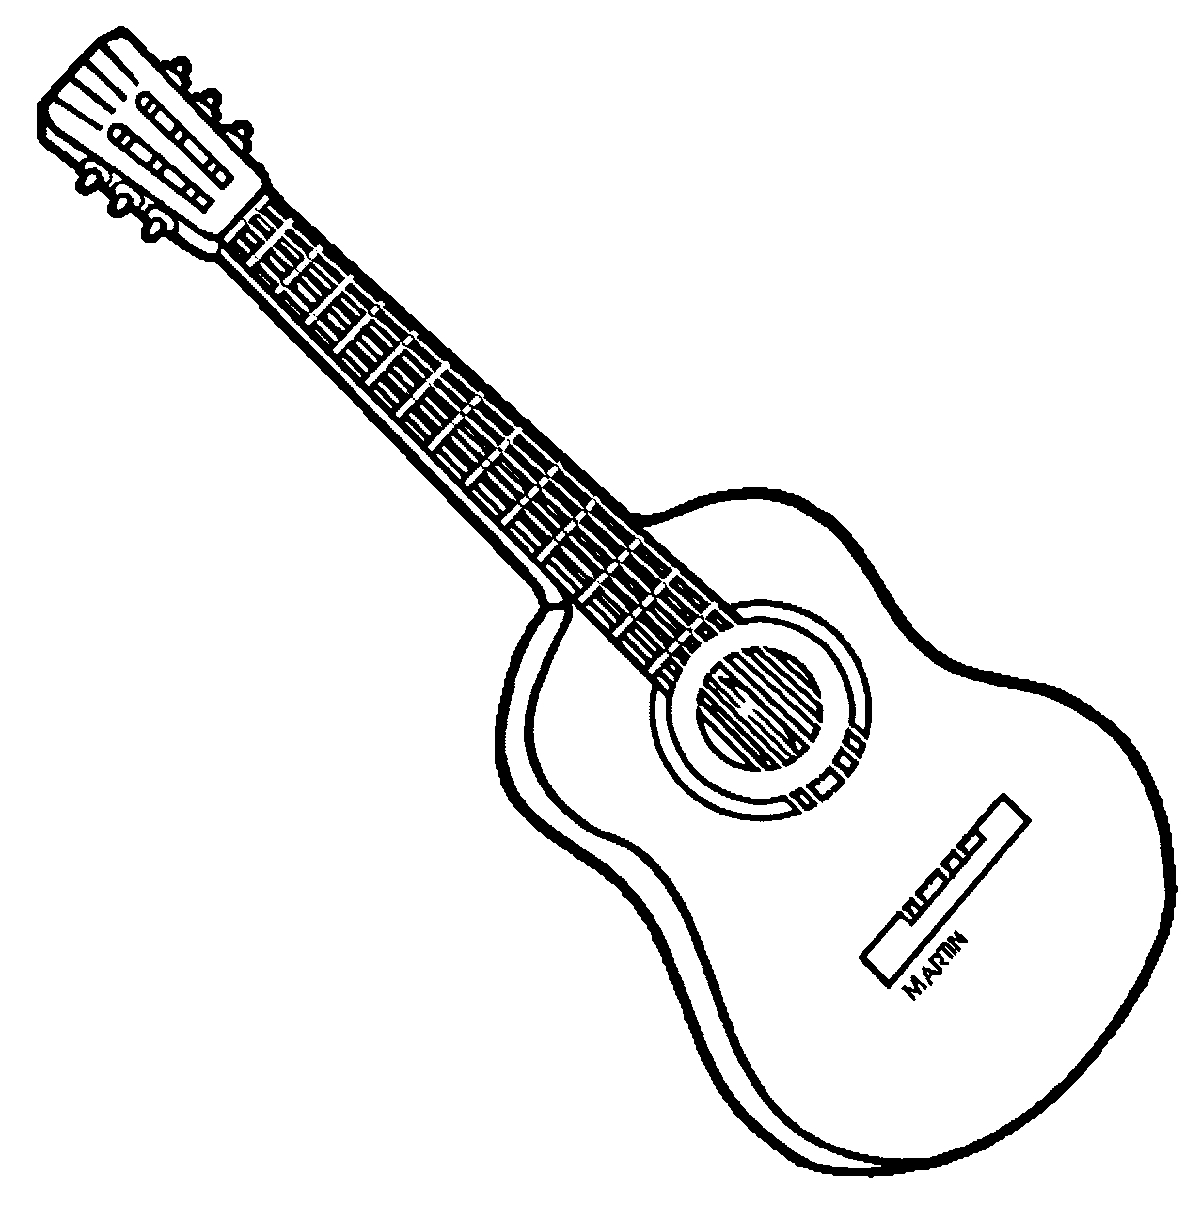 guitar coloring page - coloring pages guitar